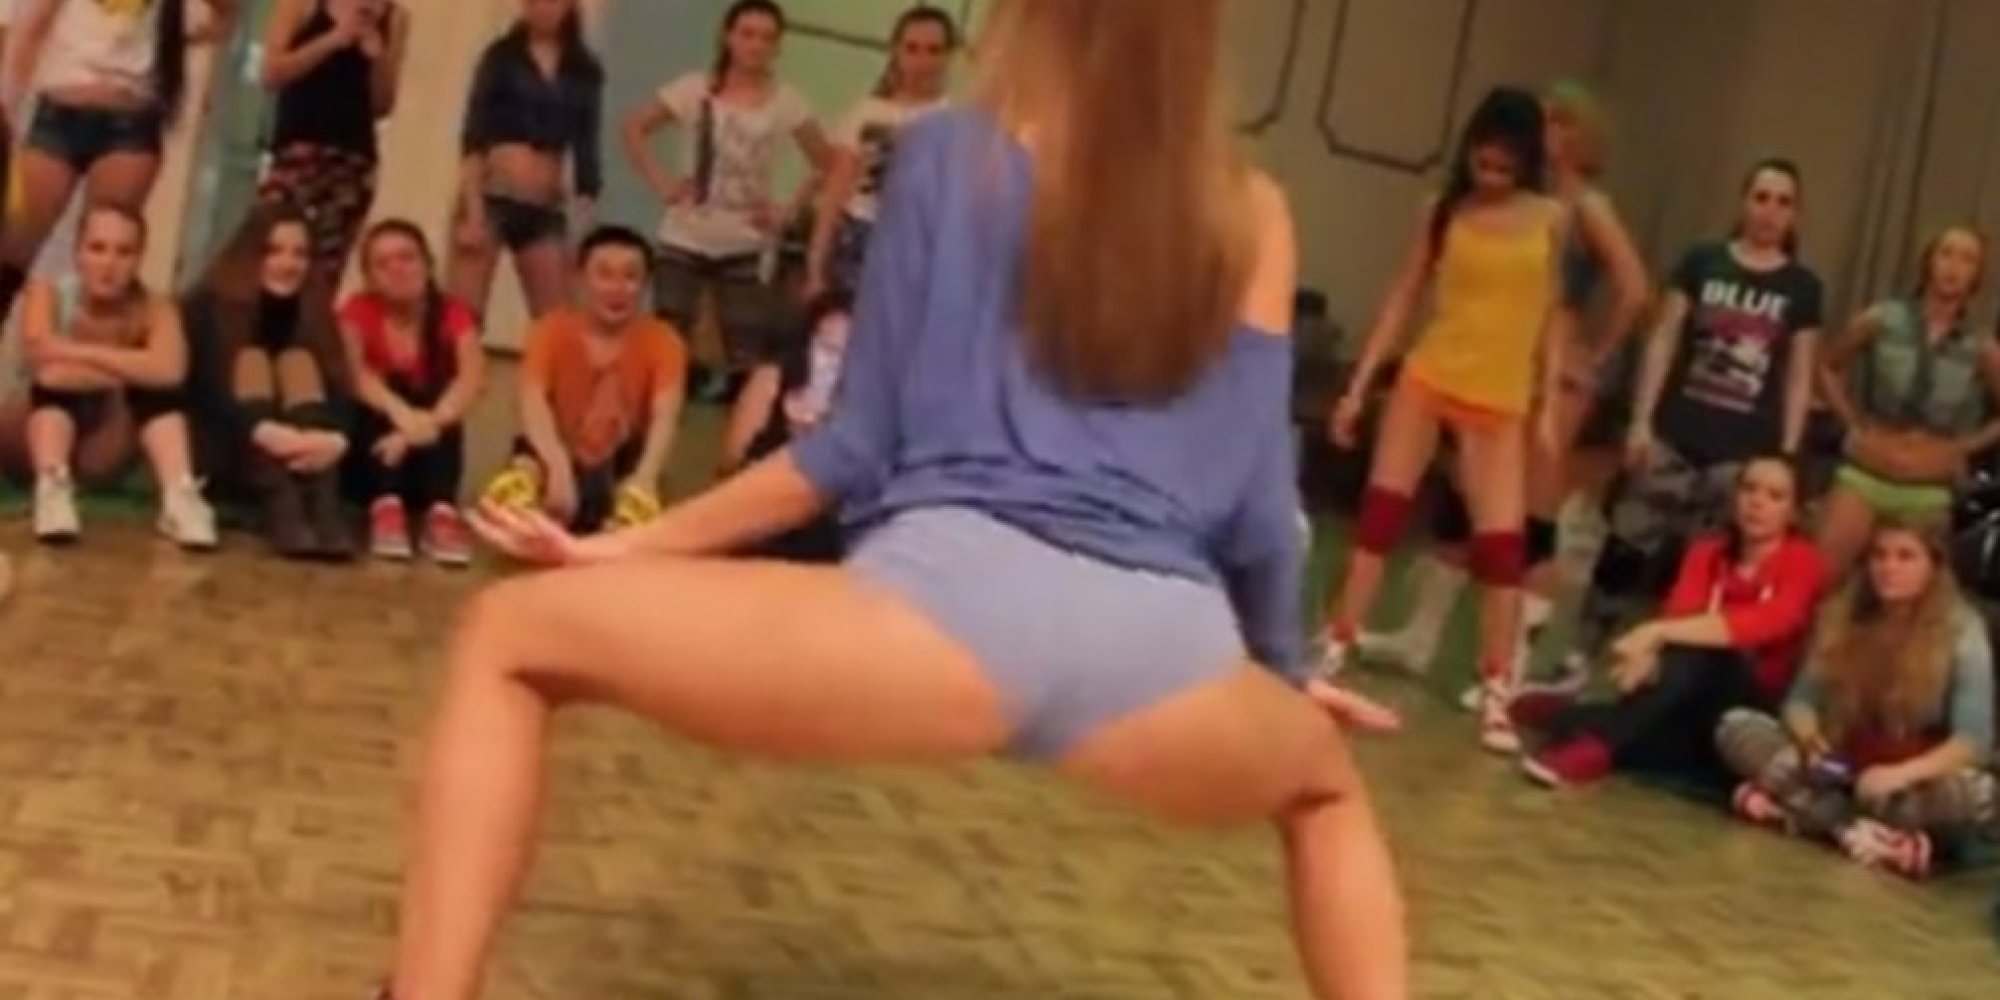 college coed twerk-off is just what you'd expect | huffpost